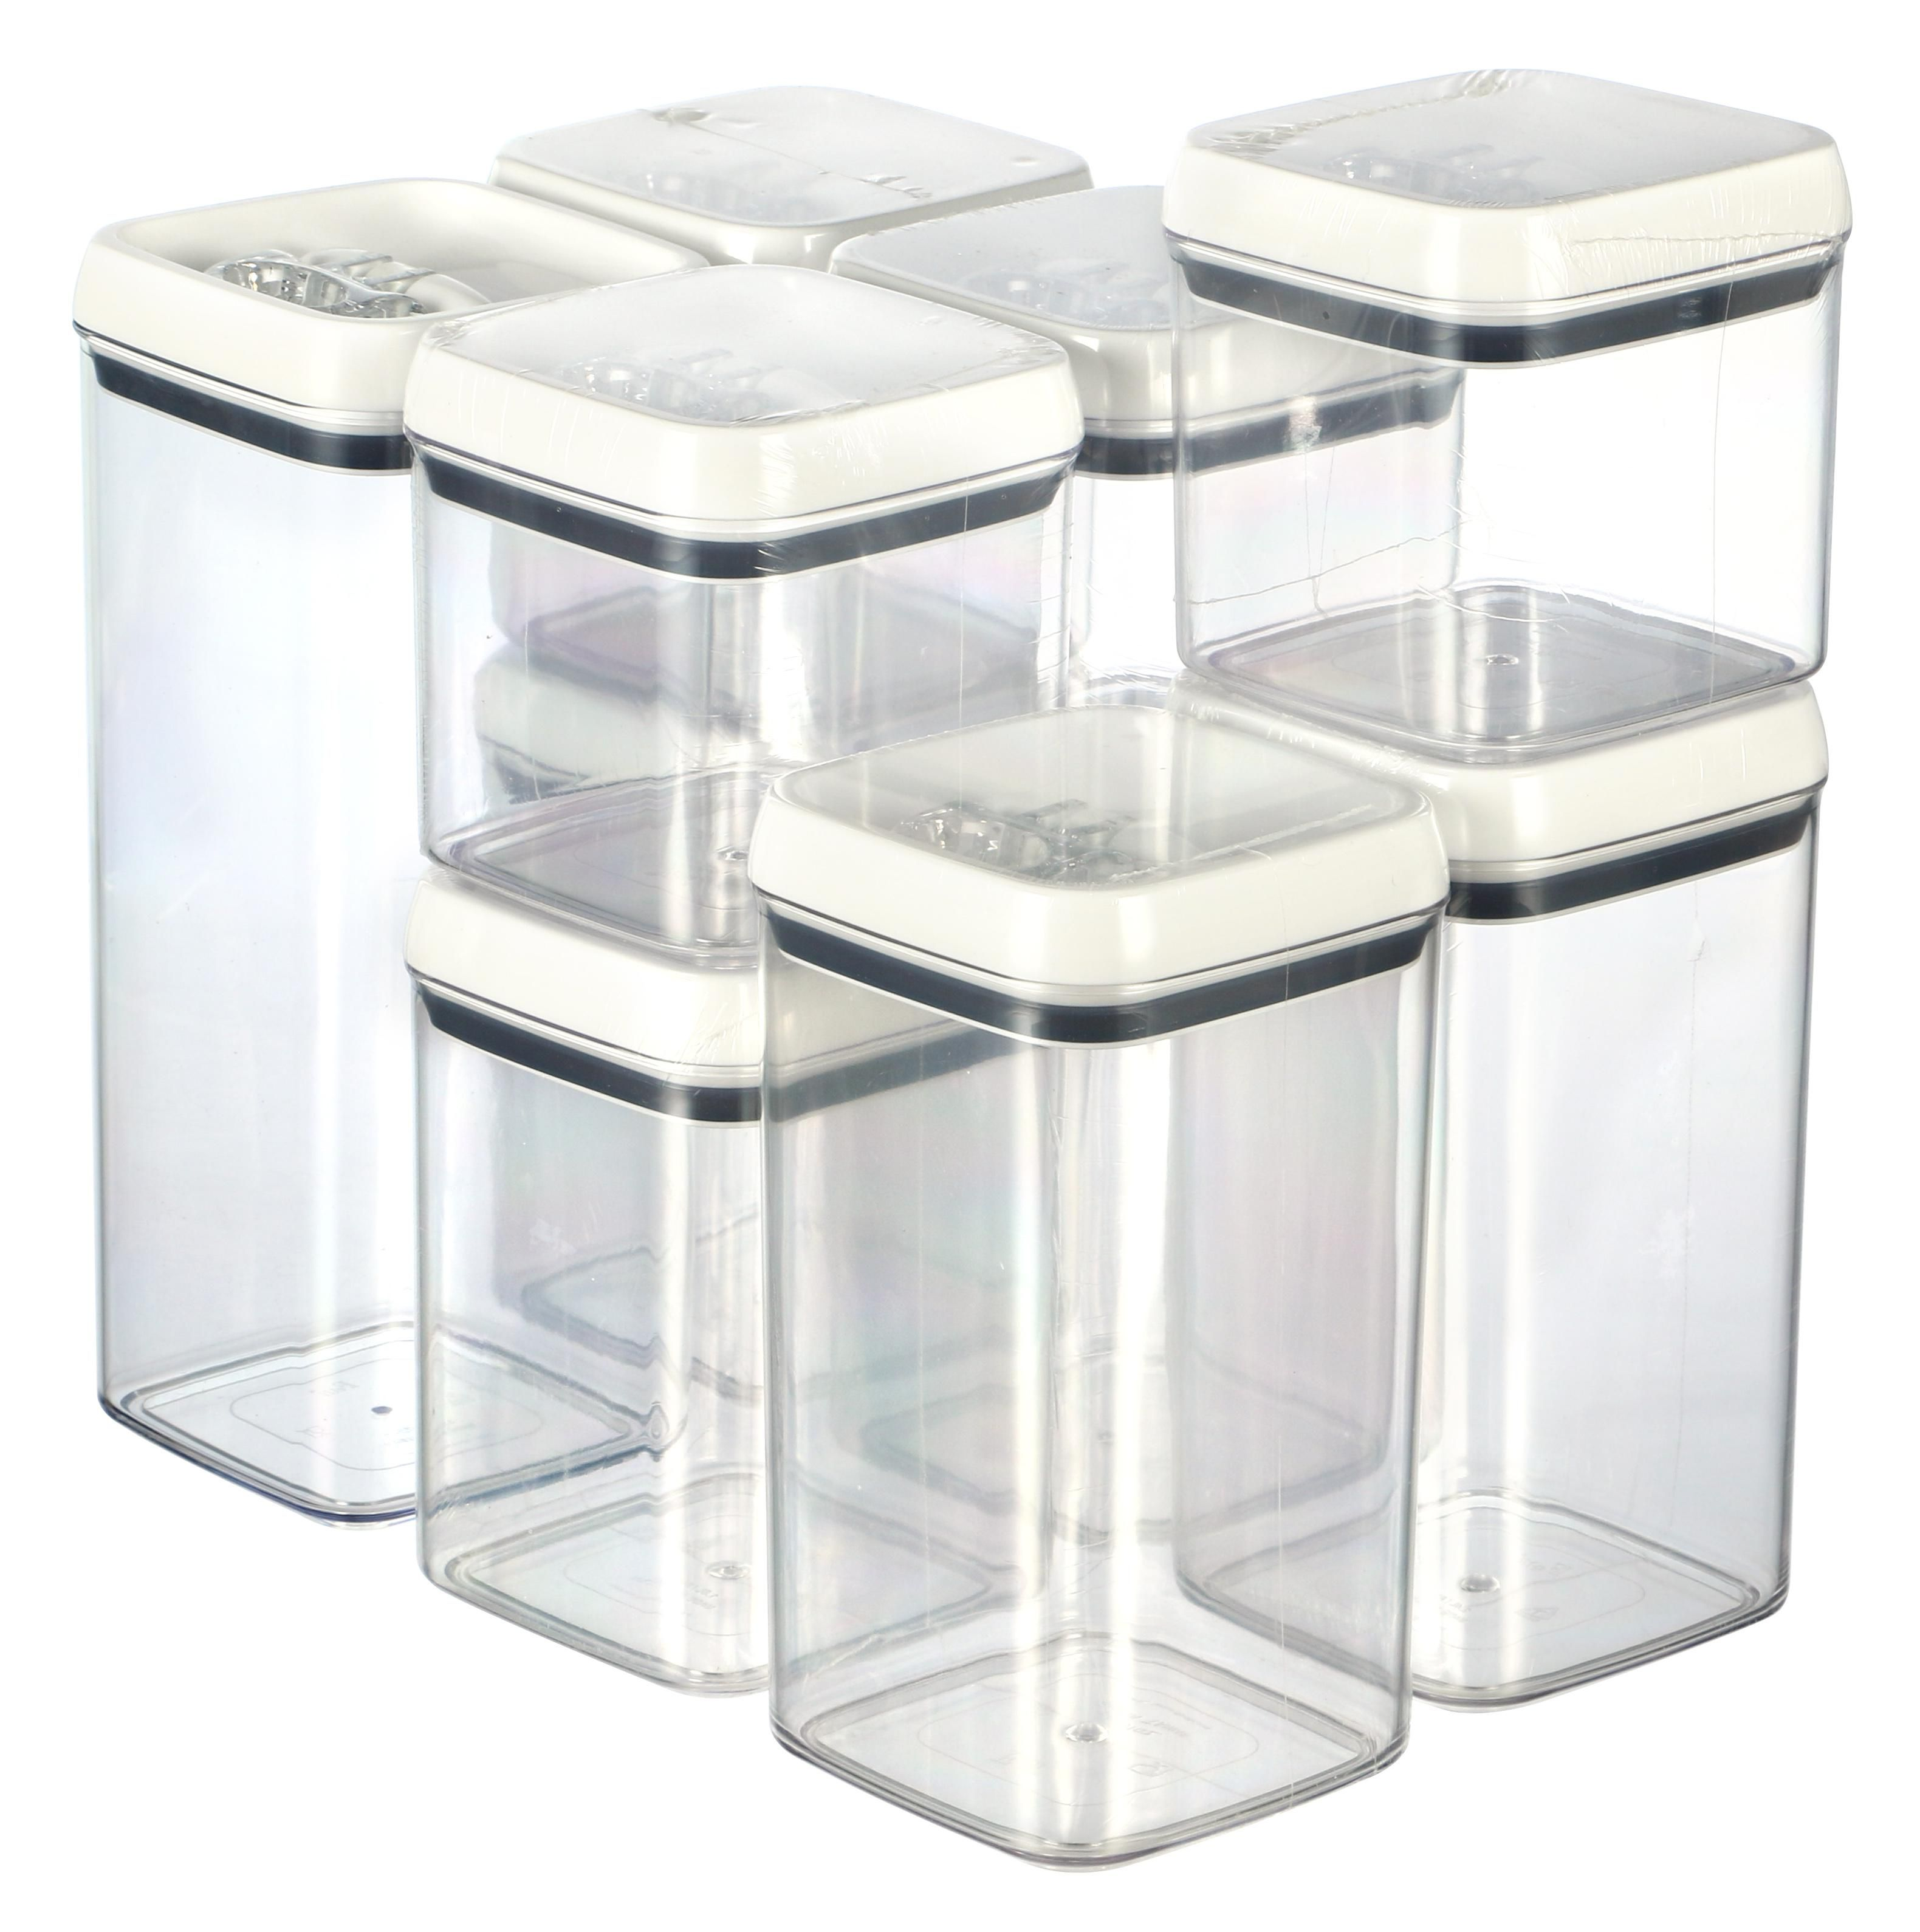 e98430477925ec2bd7e1e1c88bd2f909 - Better Homes And Gardens Flip Tite Containers 6 Piece